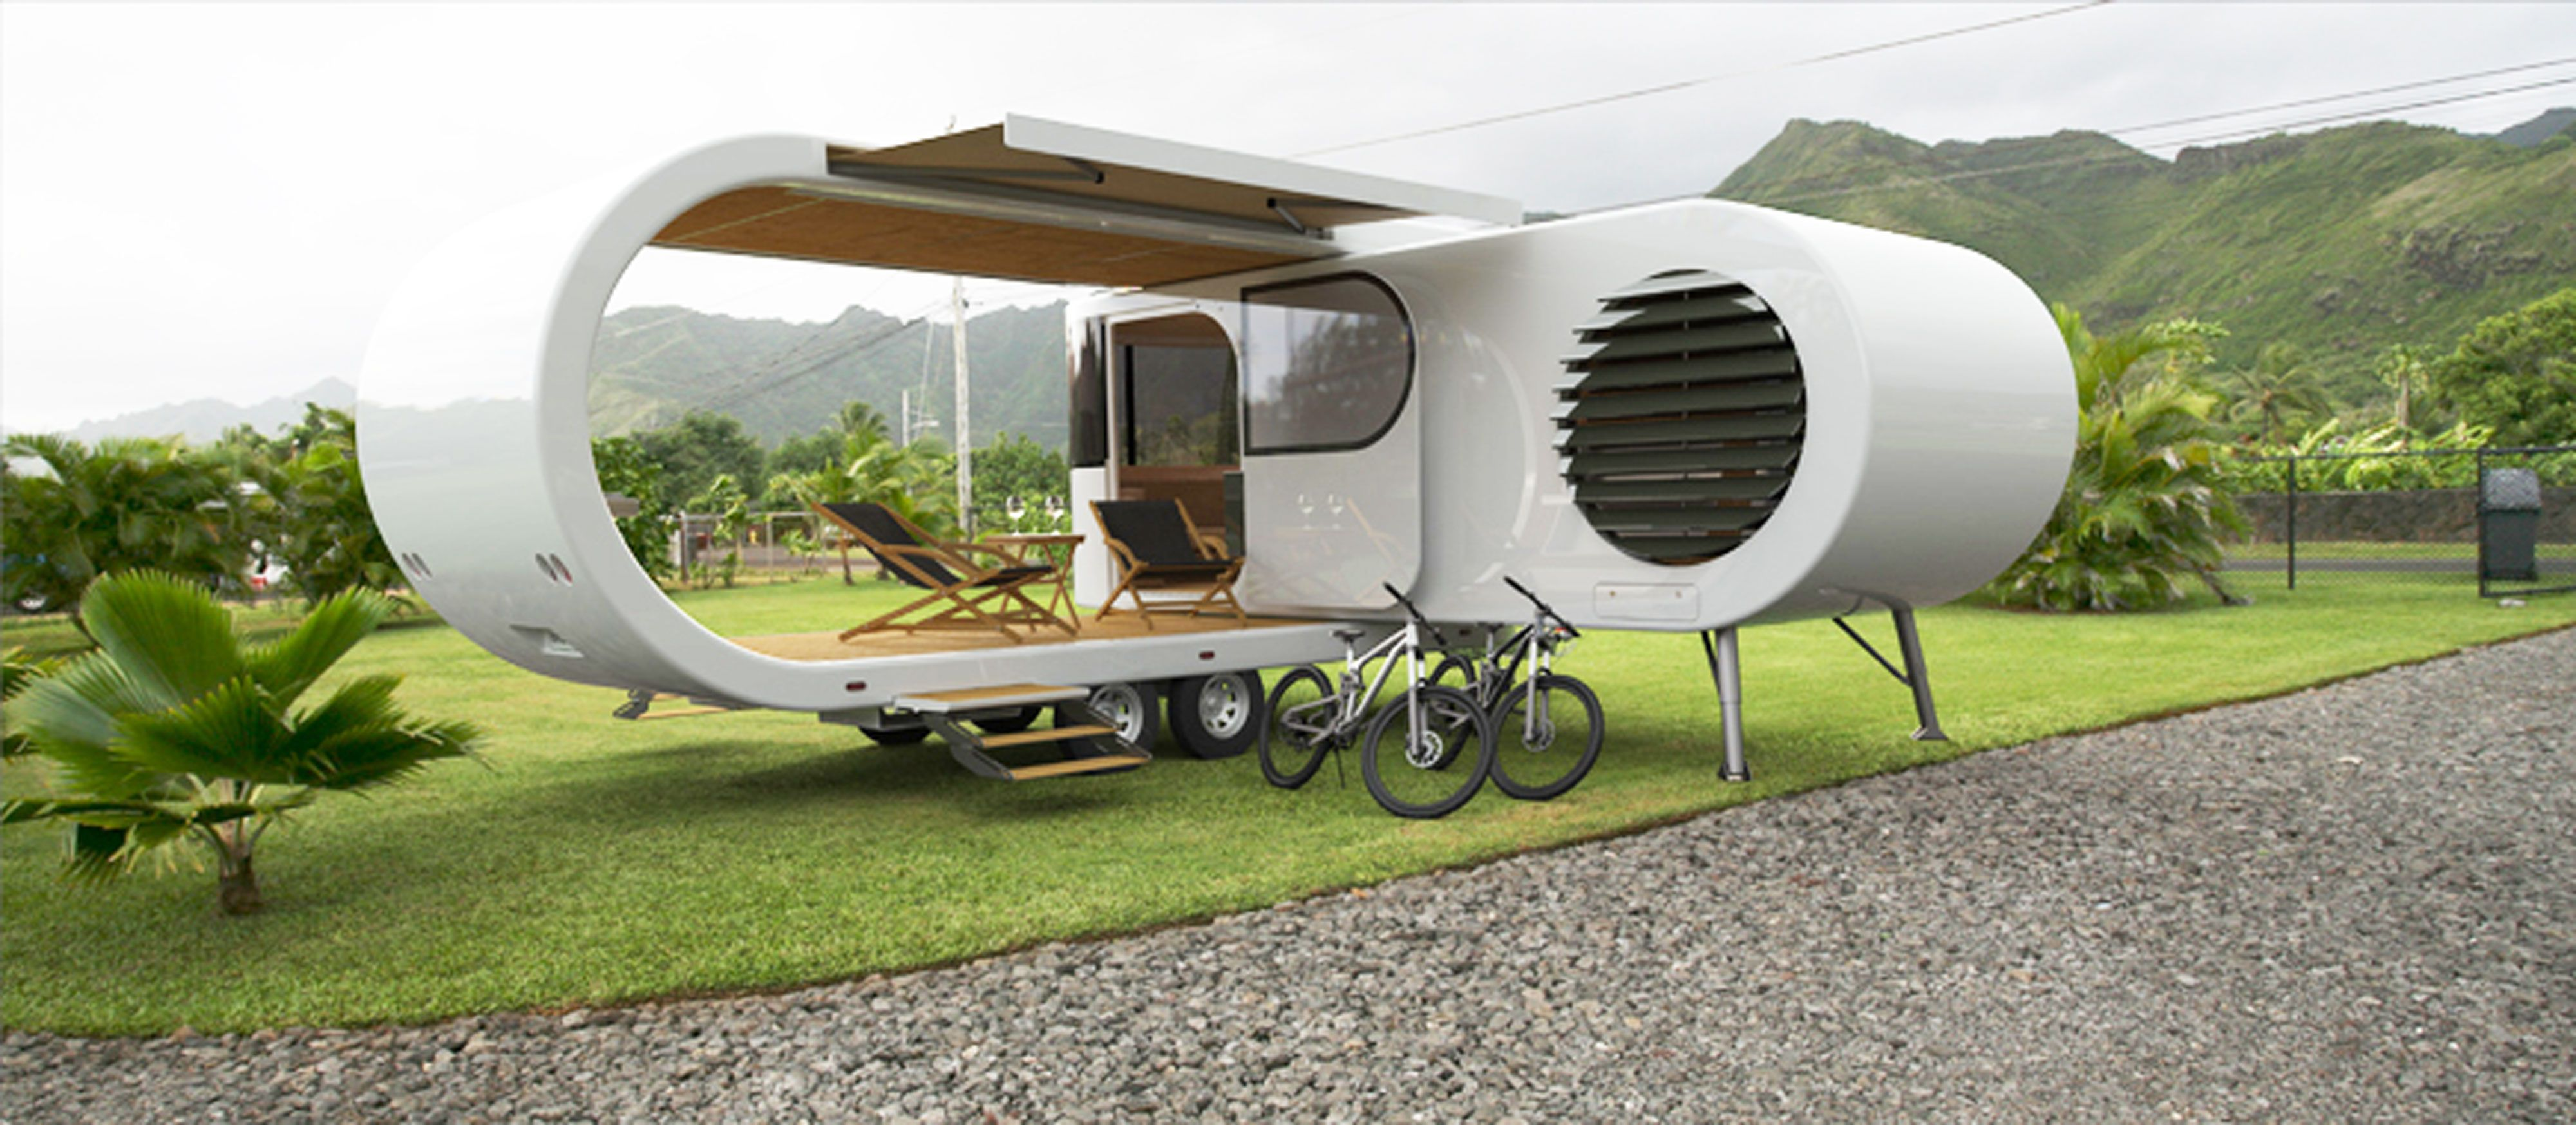 This Crazy-Cool Romotow Camper Looks Like It's From the Future